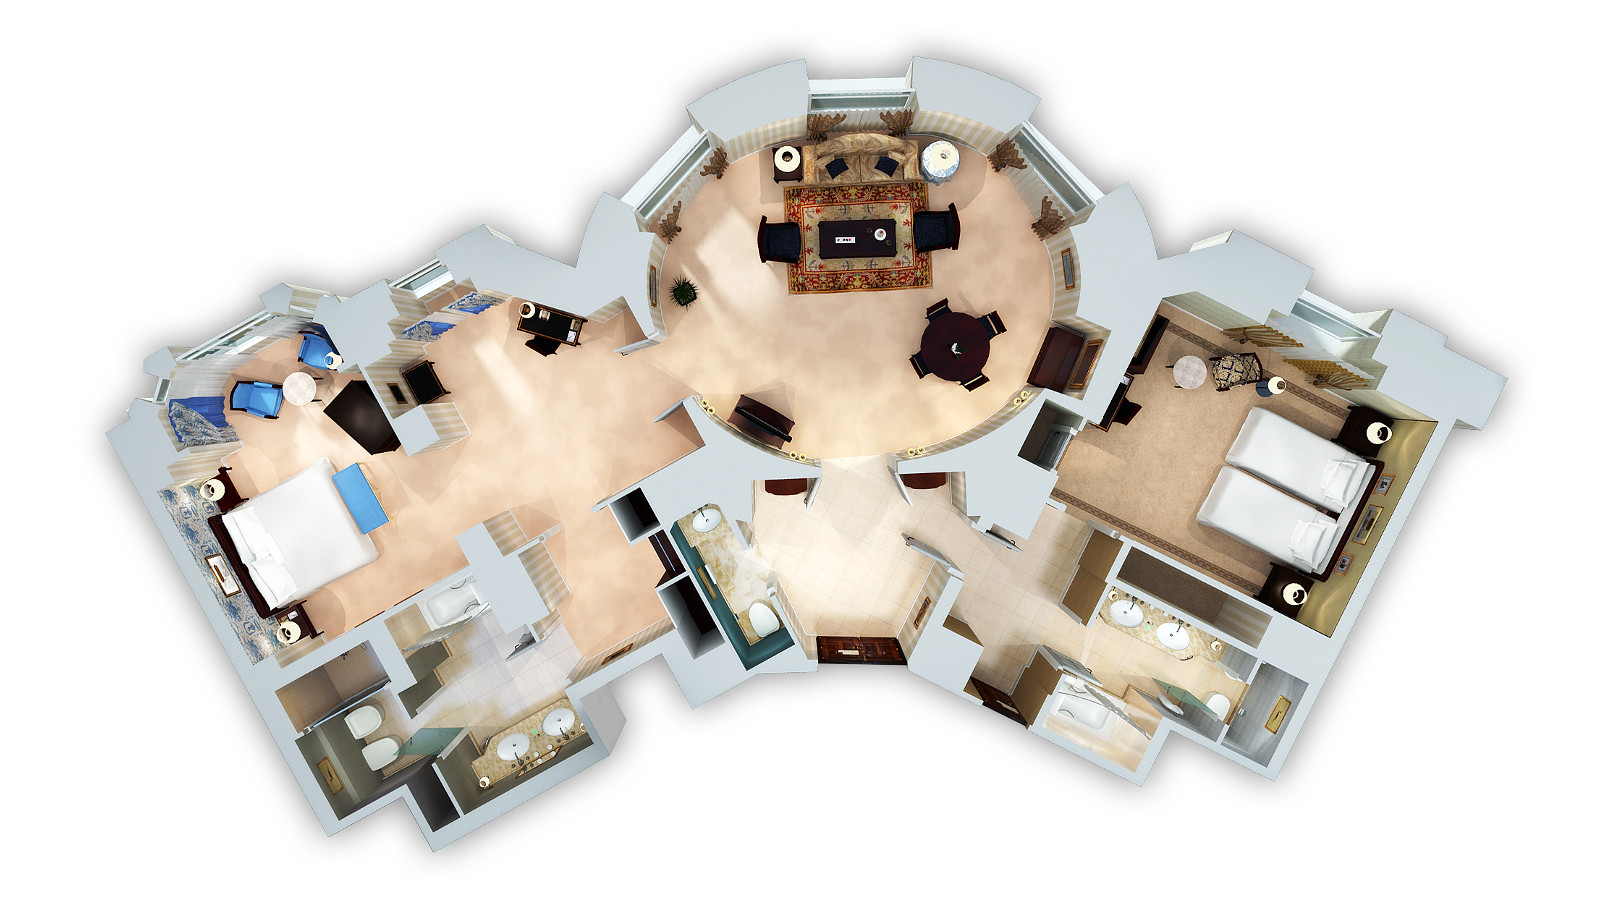 EXECUTIVE SUITE CONNECTED TO PREMIUM VIEW ROOM 3D FLOOR PLAN